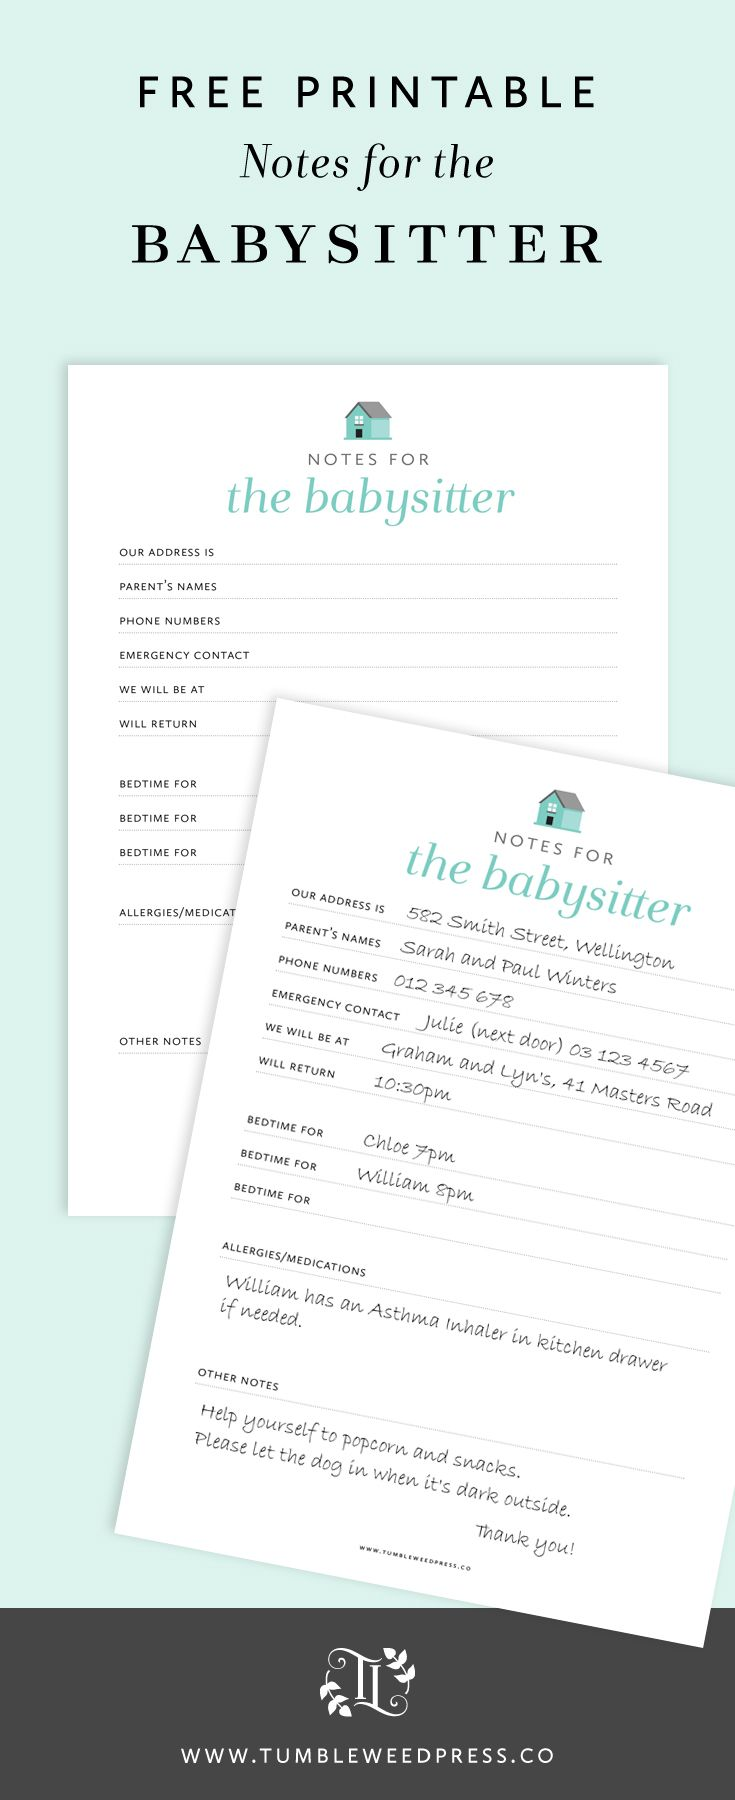 FREE PRINTABLE - Everything your babysitter needs to know.